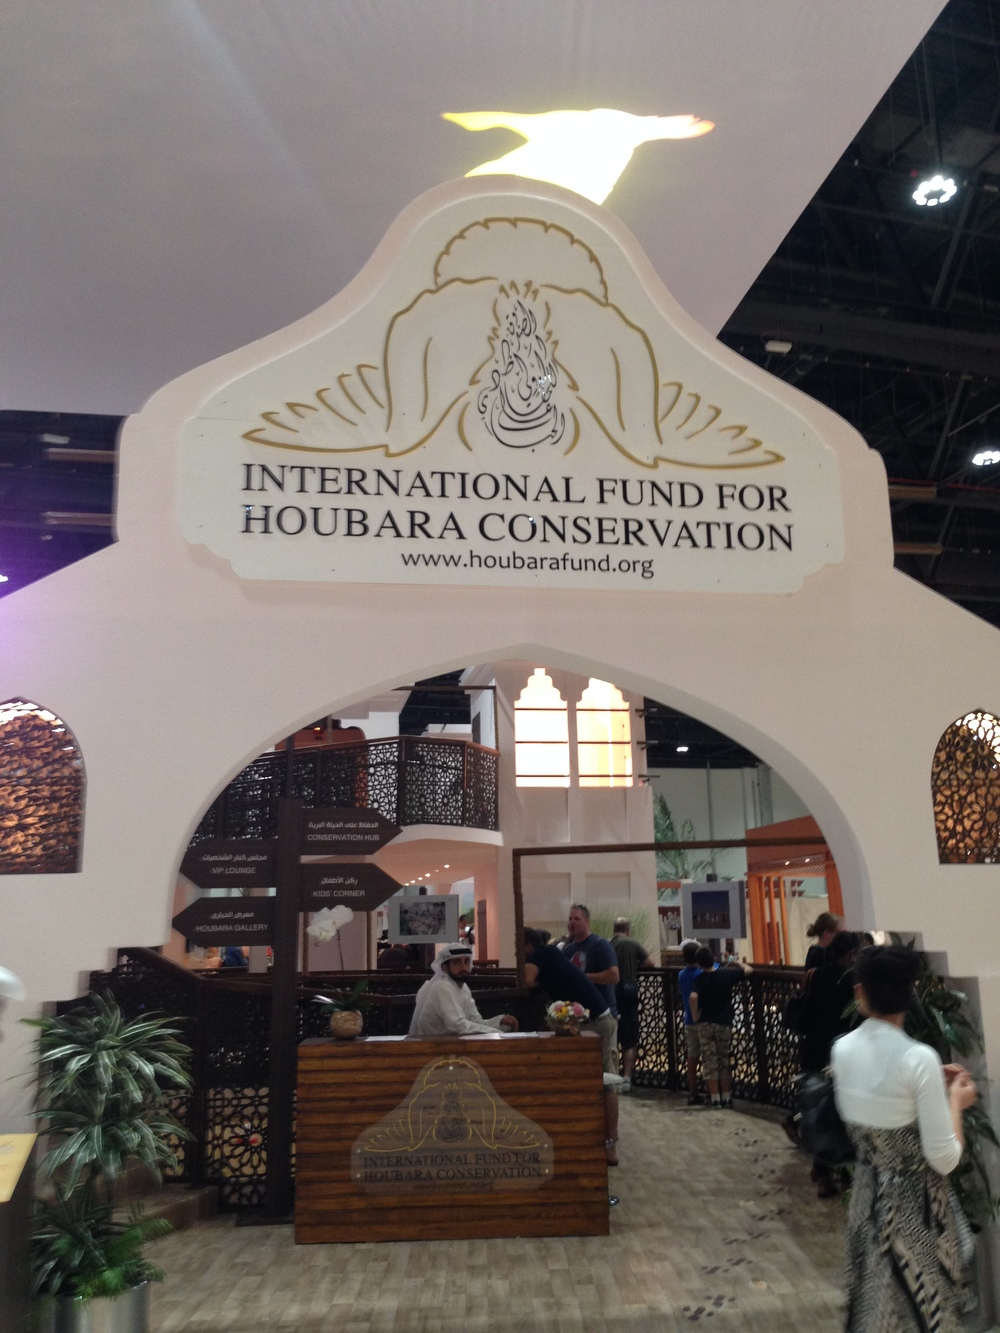 The entrance to the extensive stand of the International Fund for Houbara Conservation at Adihex 2014, complete with receptionist and signpost.